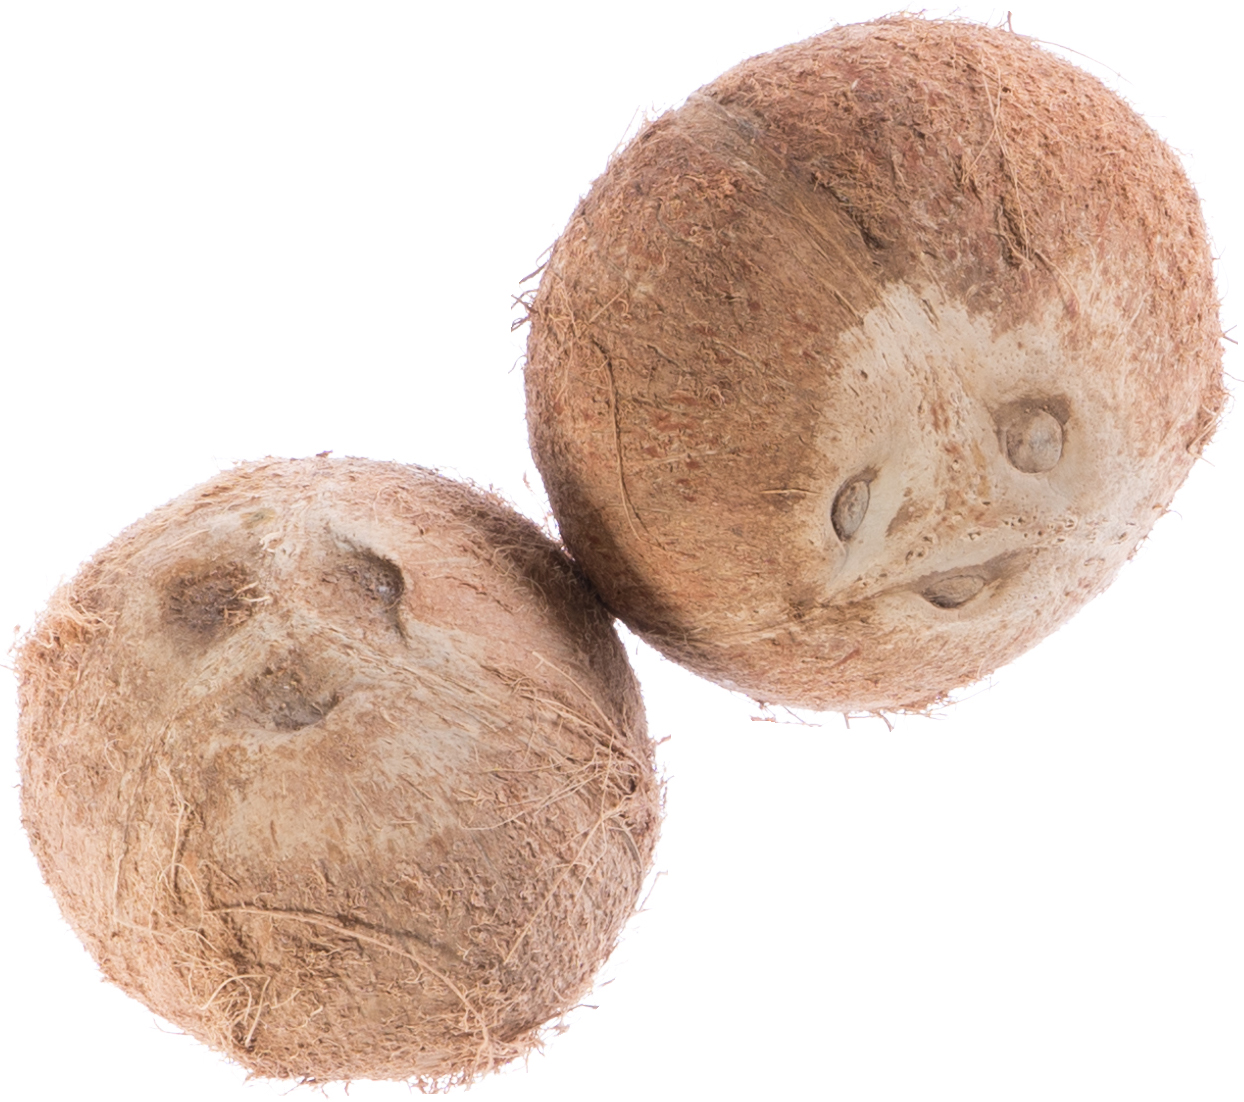 I've got a lovely pair of coconuts